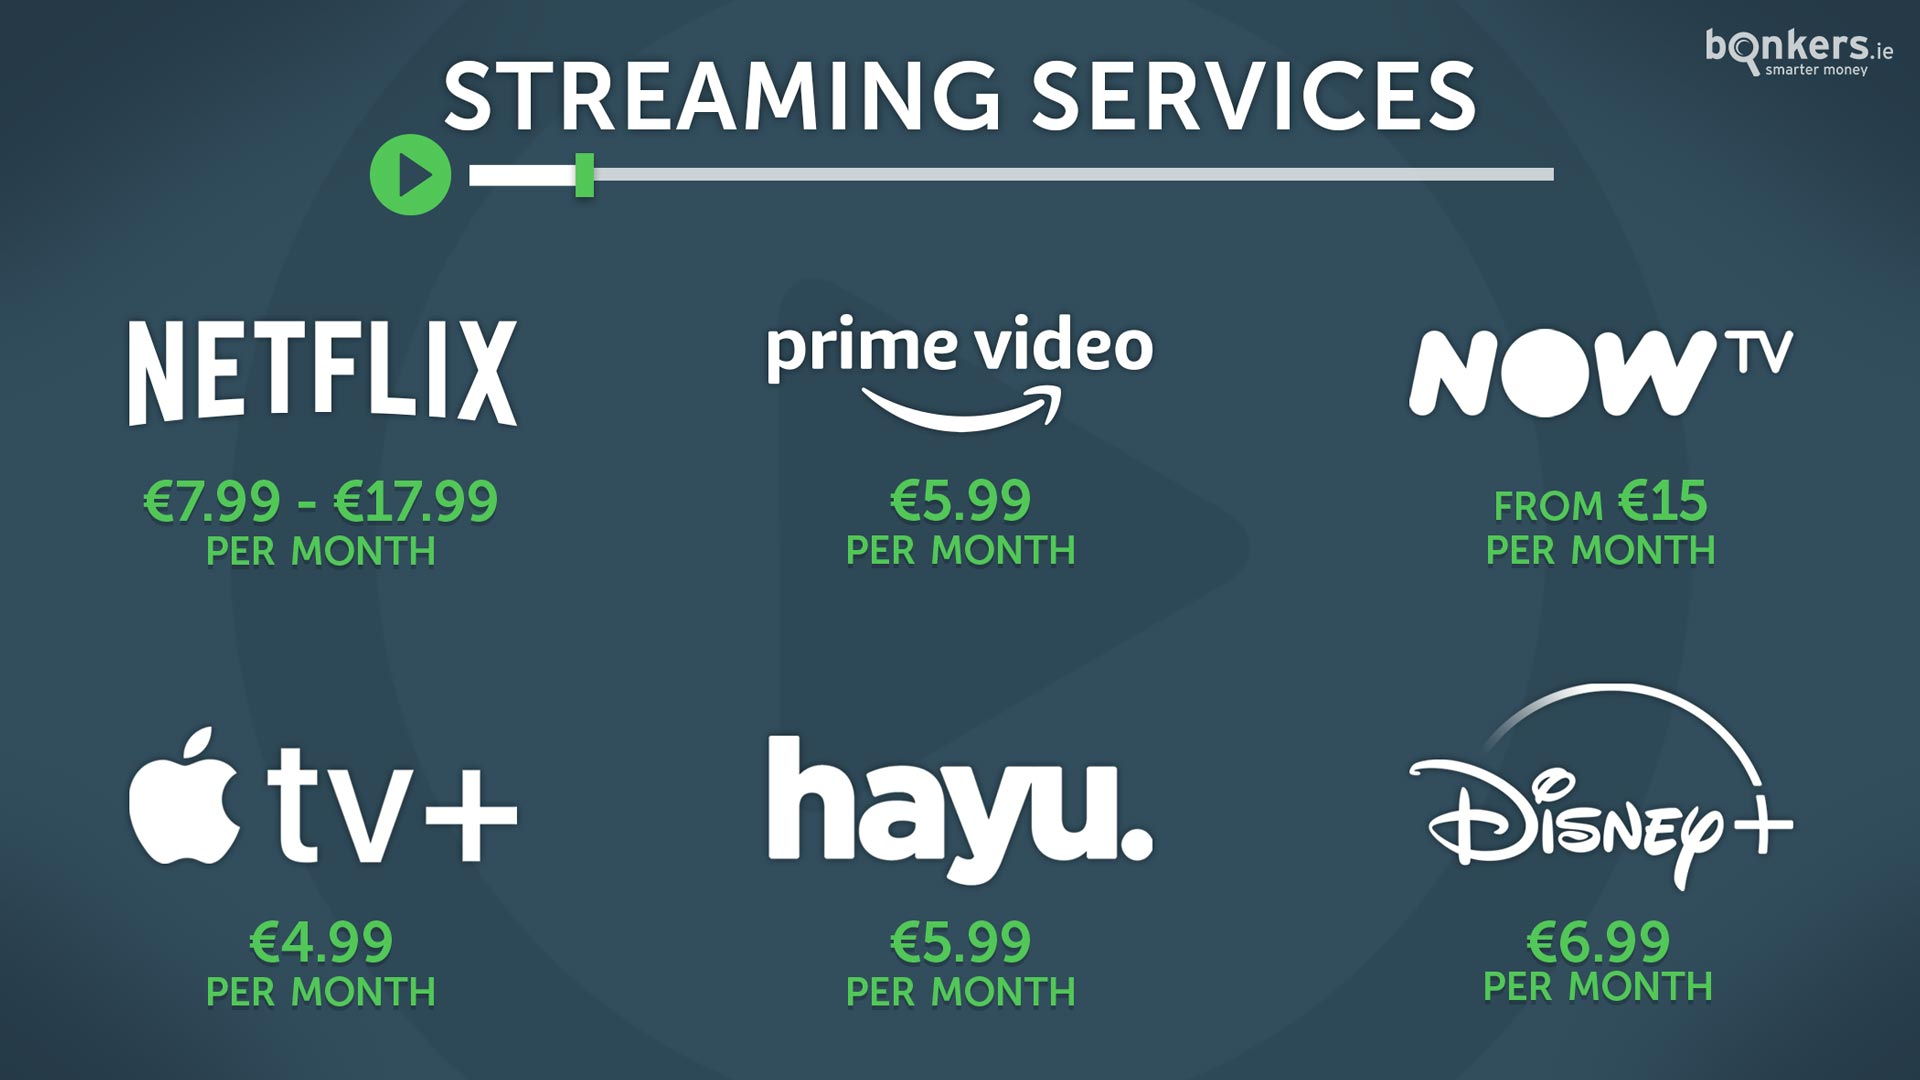 Streaming prices